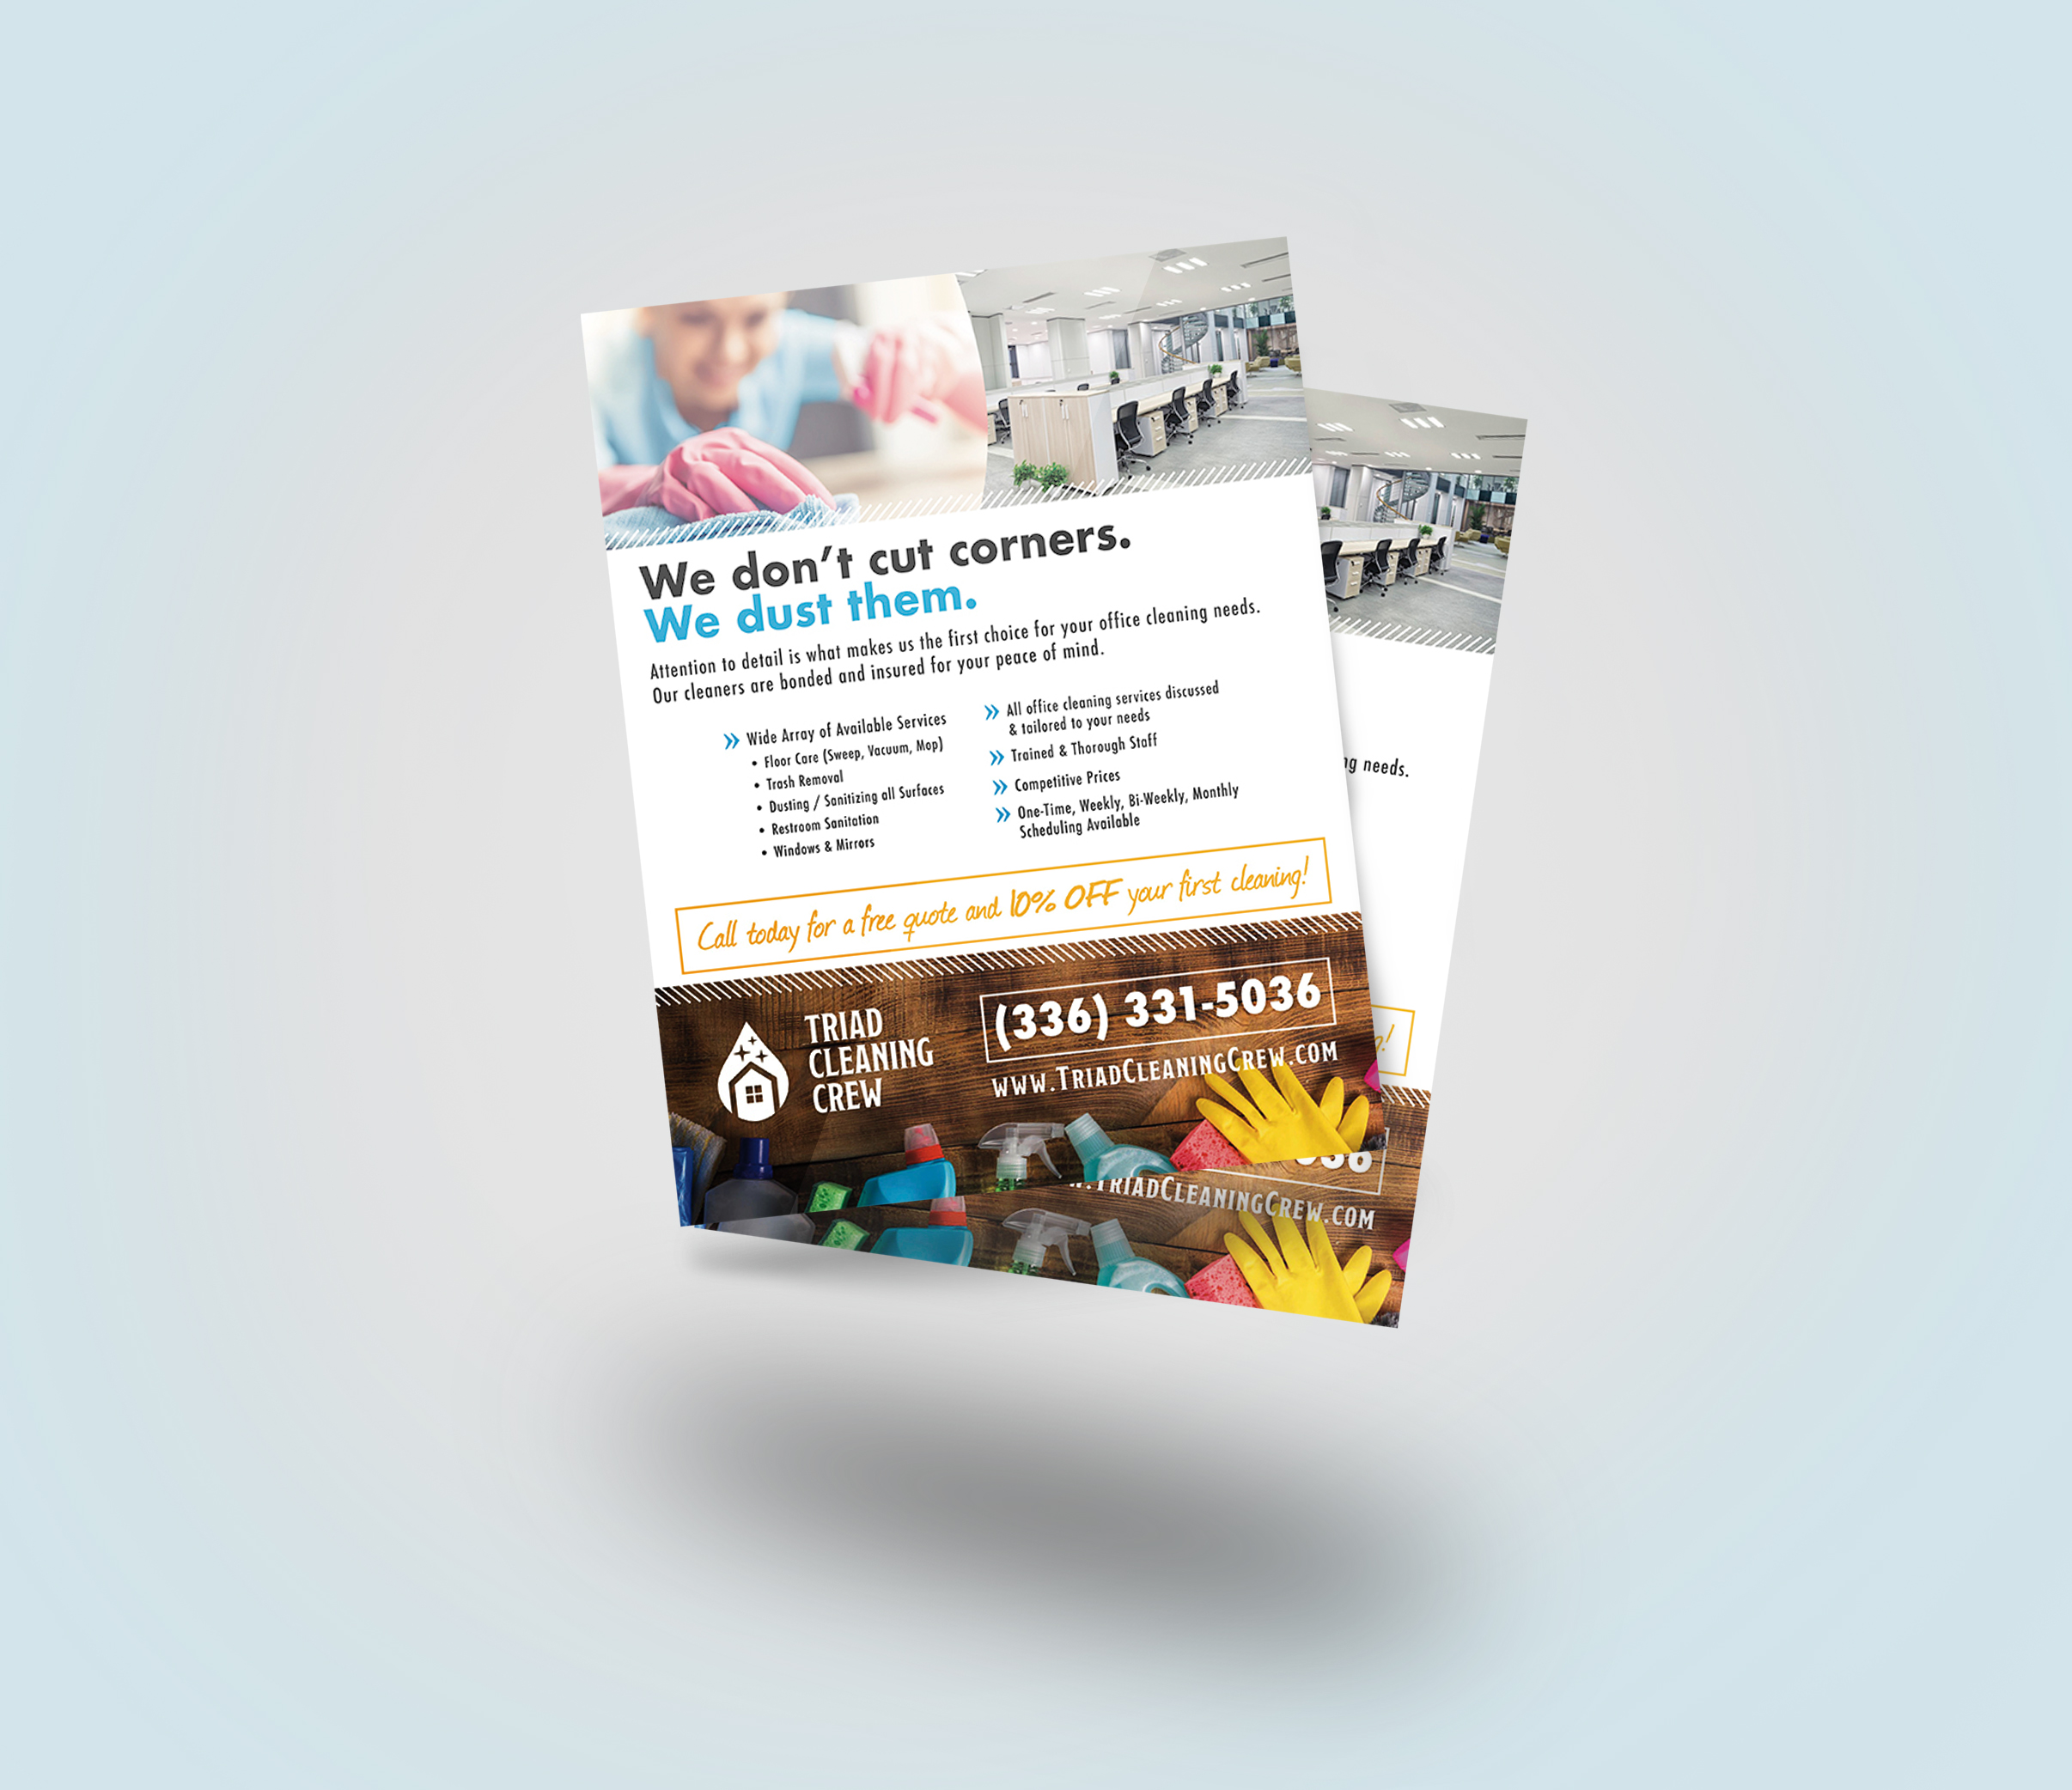 Triad Cleaning Crew Flyer Design -